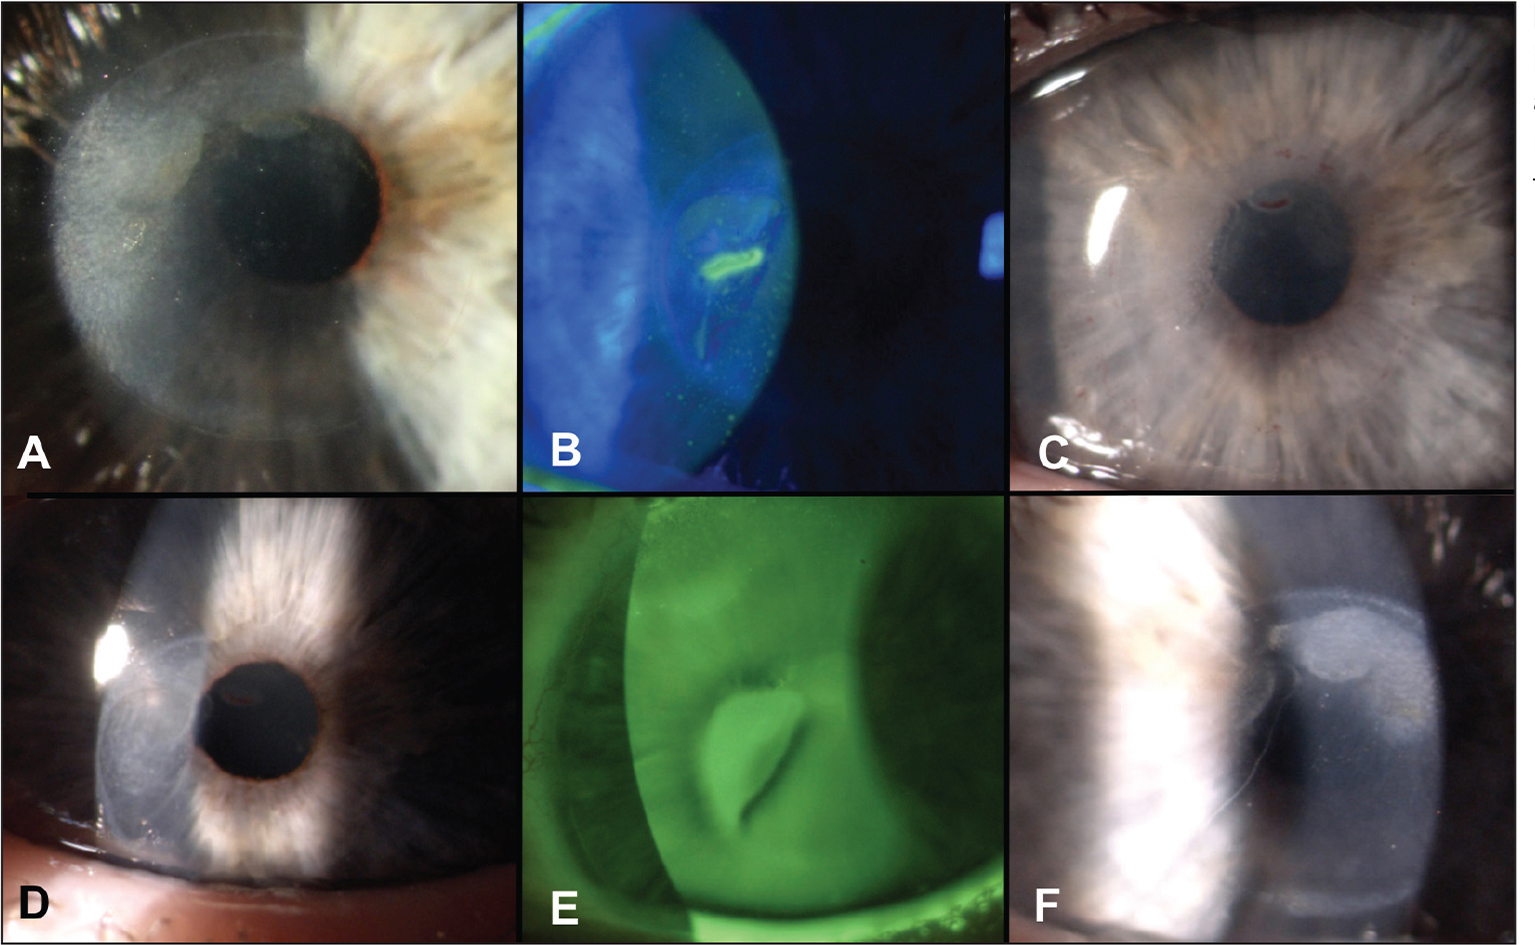 (A) Corneal inlay 7 years after implantation. (B) Corneal inlay 11 years after implantation with epithelial and stromal defect. (C) Cornea 1 day after explantation. (D) Cornea 2 weeks after explantation. (E, F) Cornea 3 months after explantation.